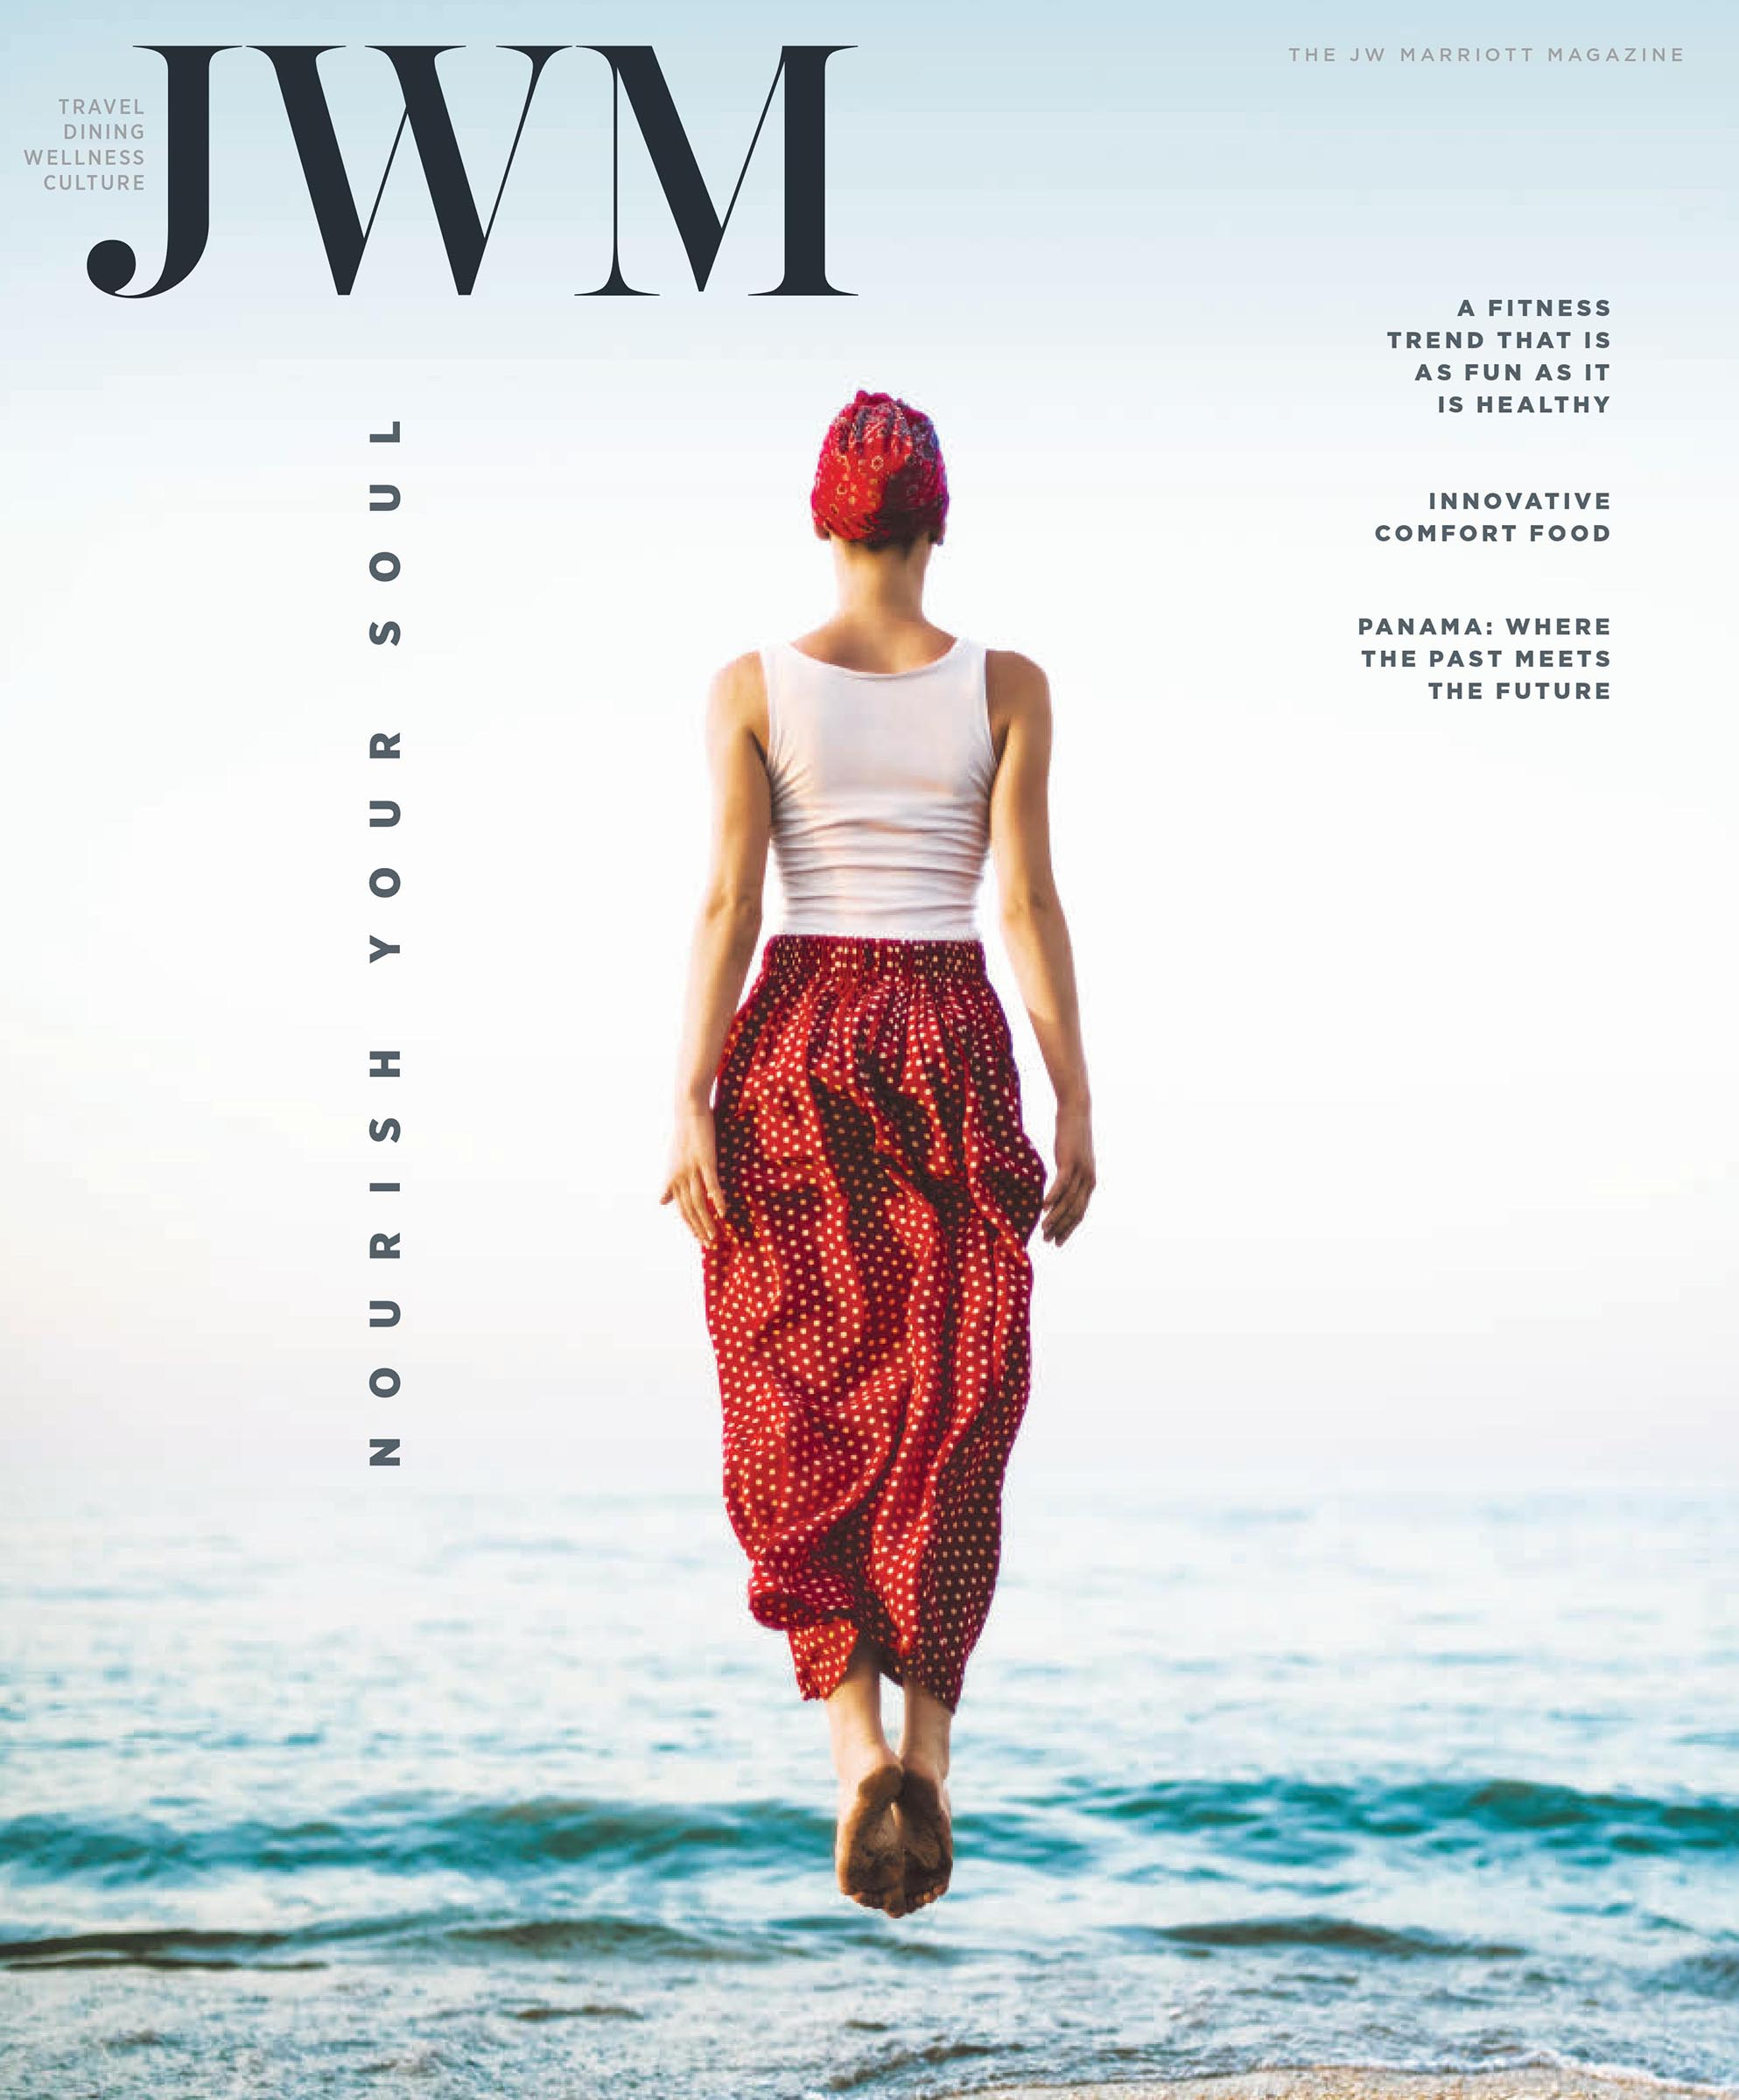 Fall 2019 JW Marriott Magazine Cover.jpg